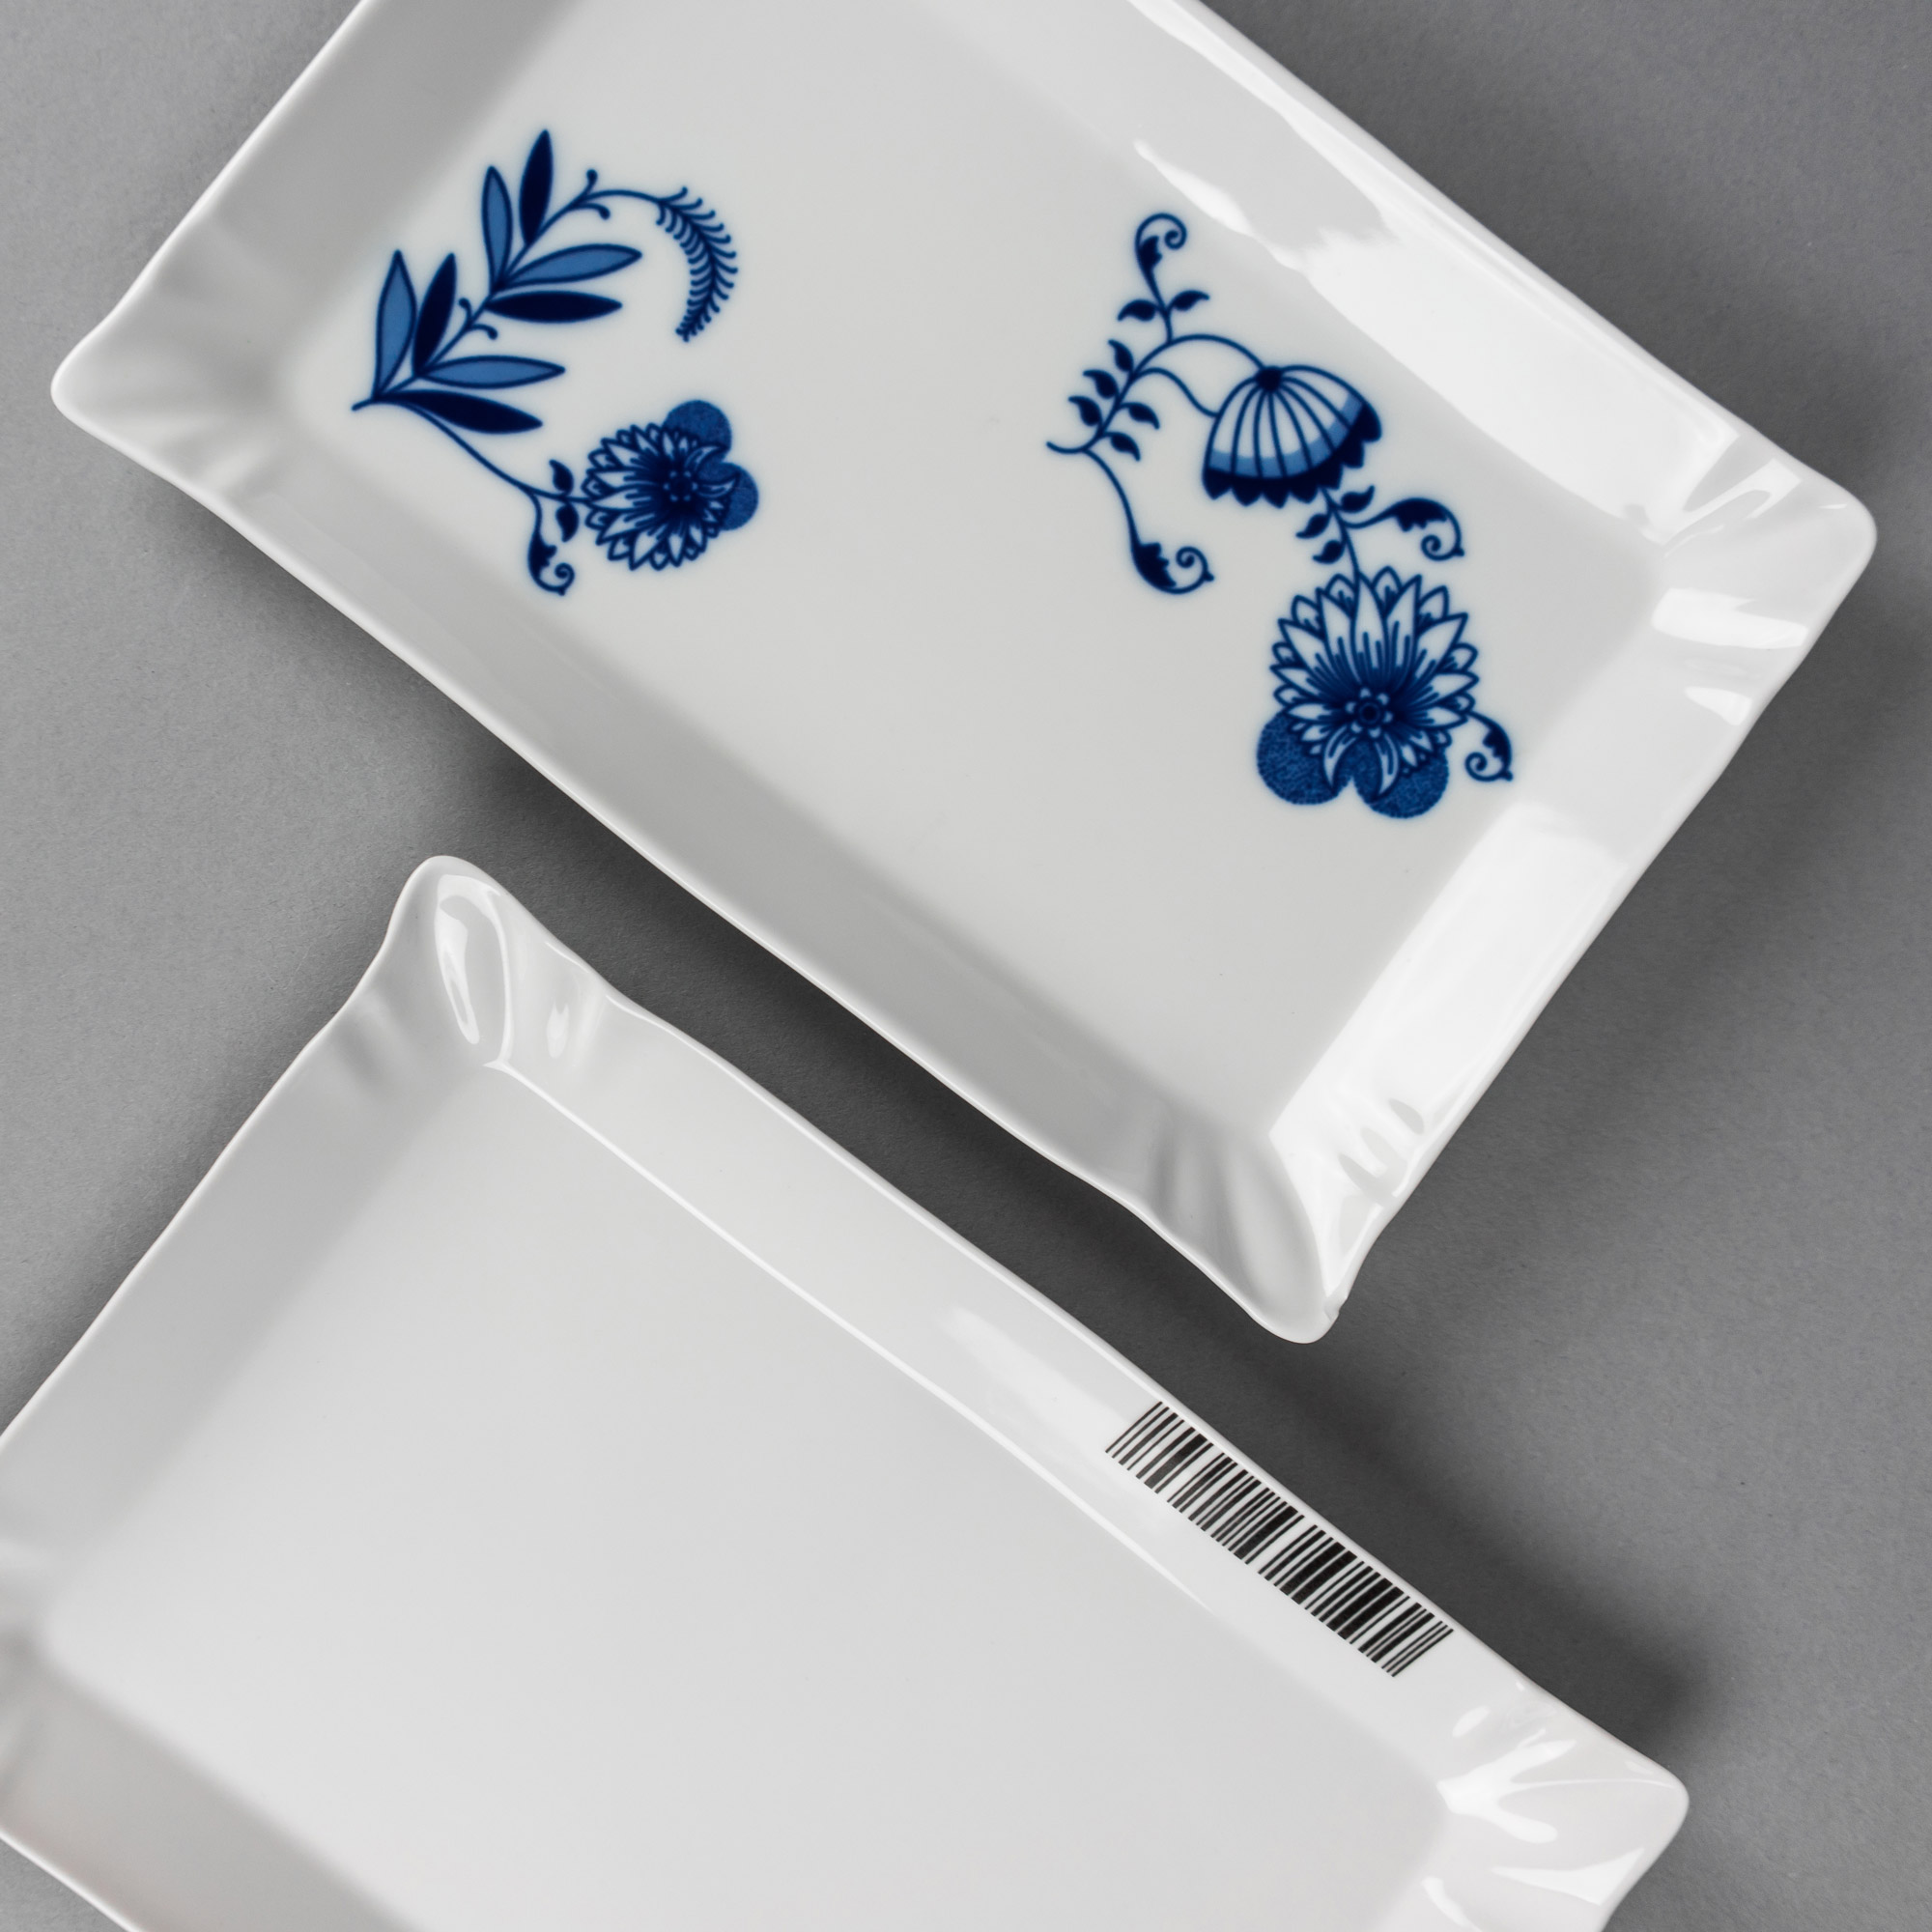 Trays by Qubus